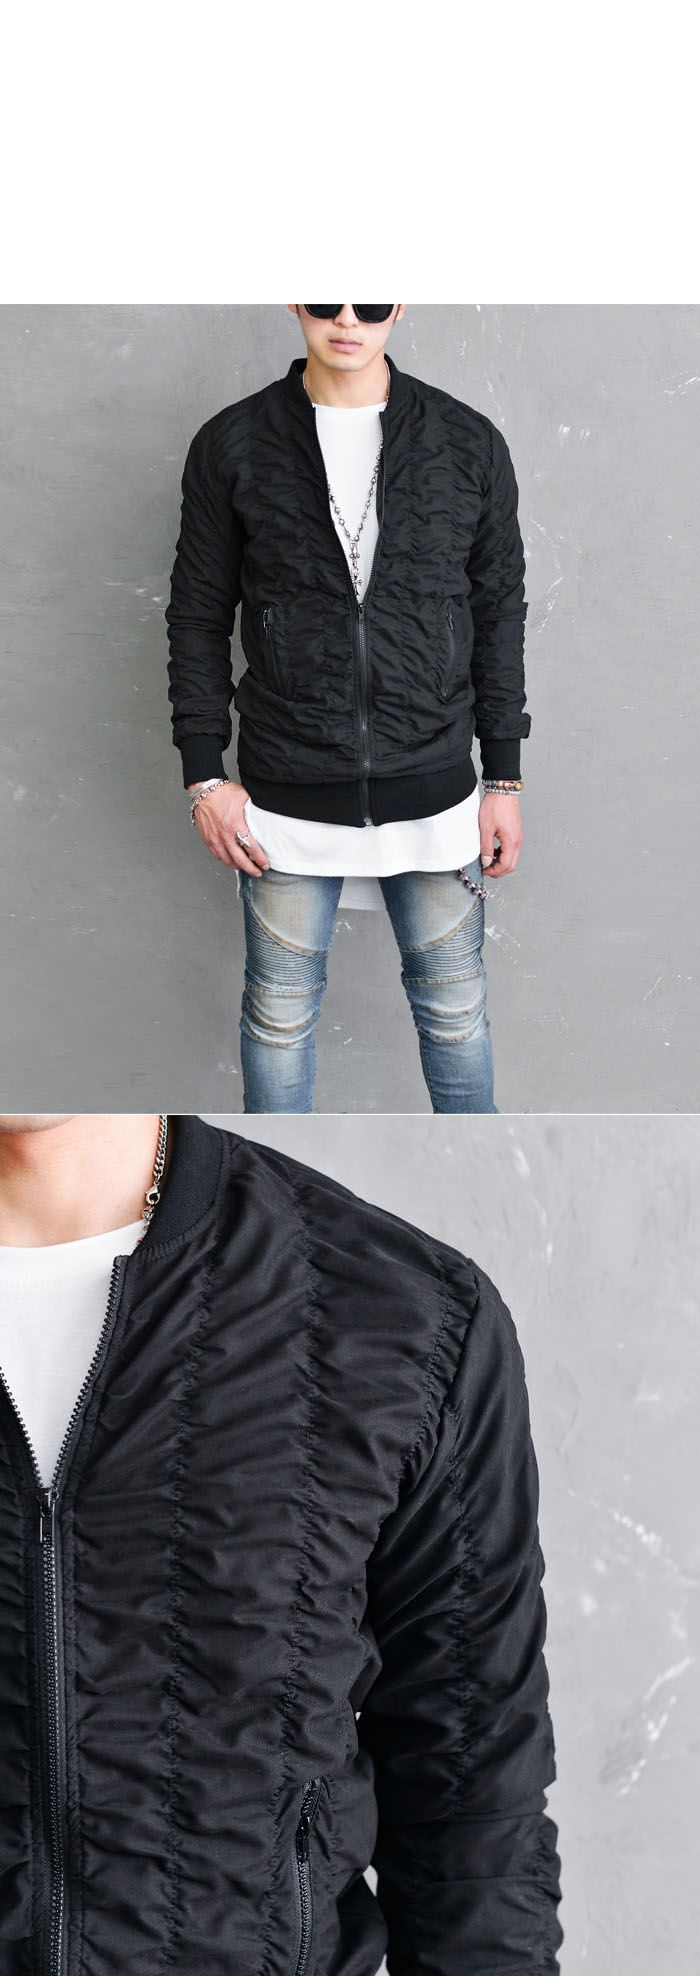 Outerwear :: Extended Length Slim Shirrring Bomber-Jacket 165 - Mens Fashion Clothing For An Attractive Guy Look